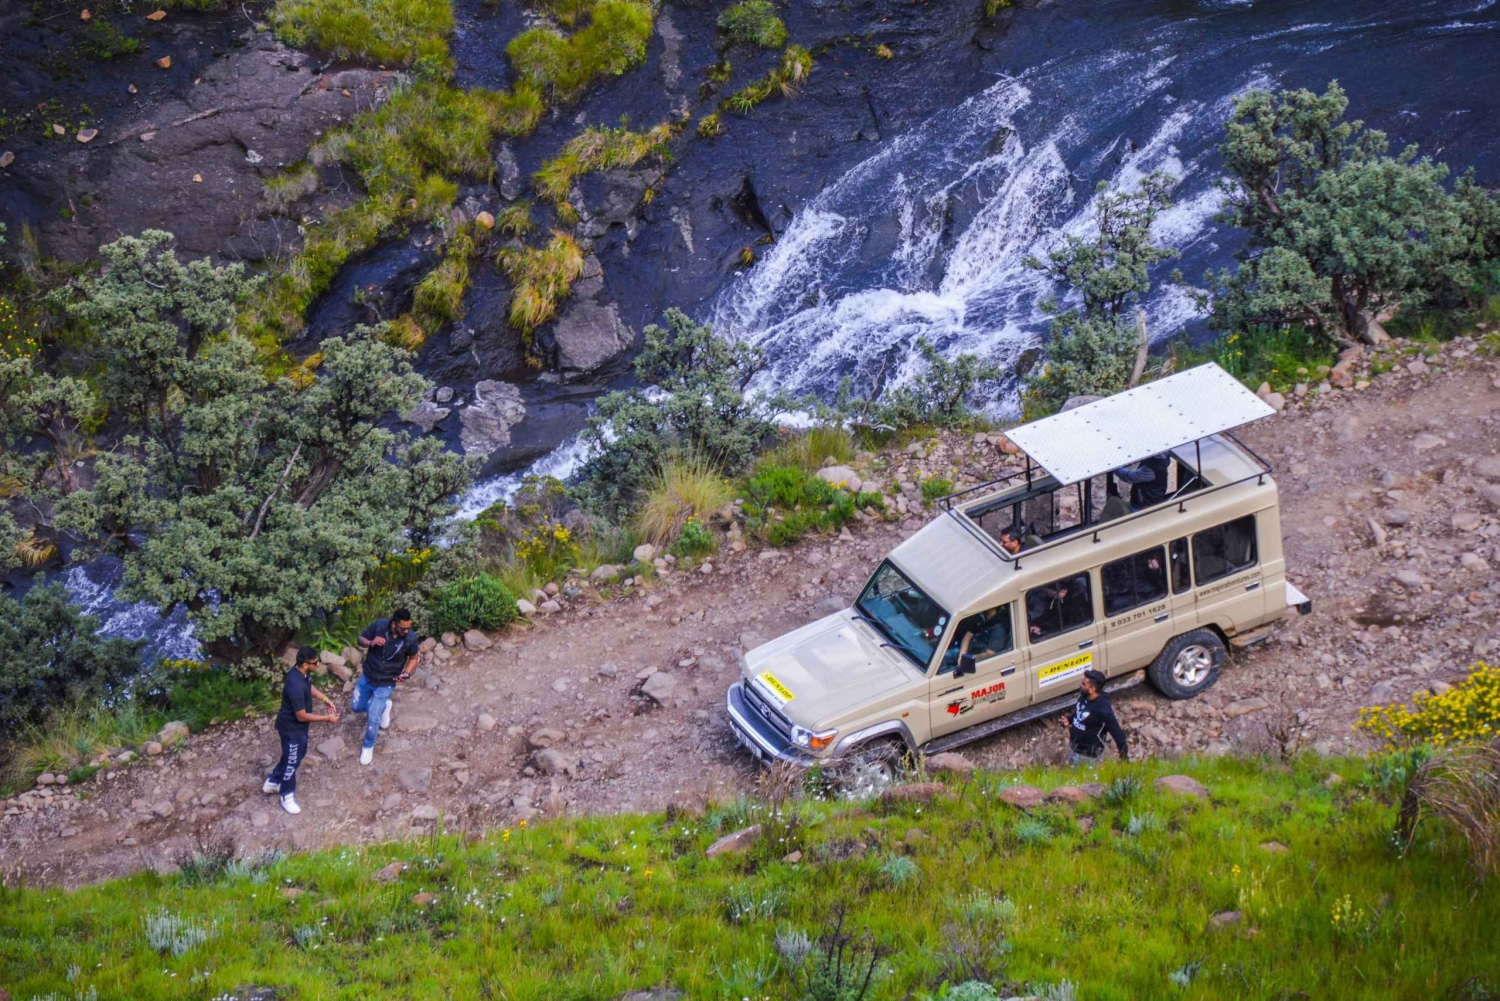 Underberg: Full day 4X4 trip to the Sani Pass & Lesotho